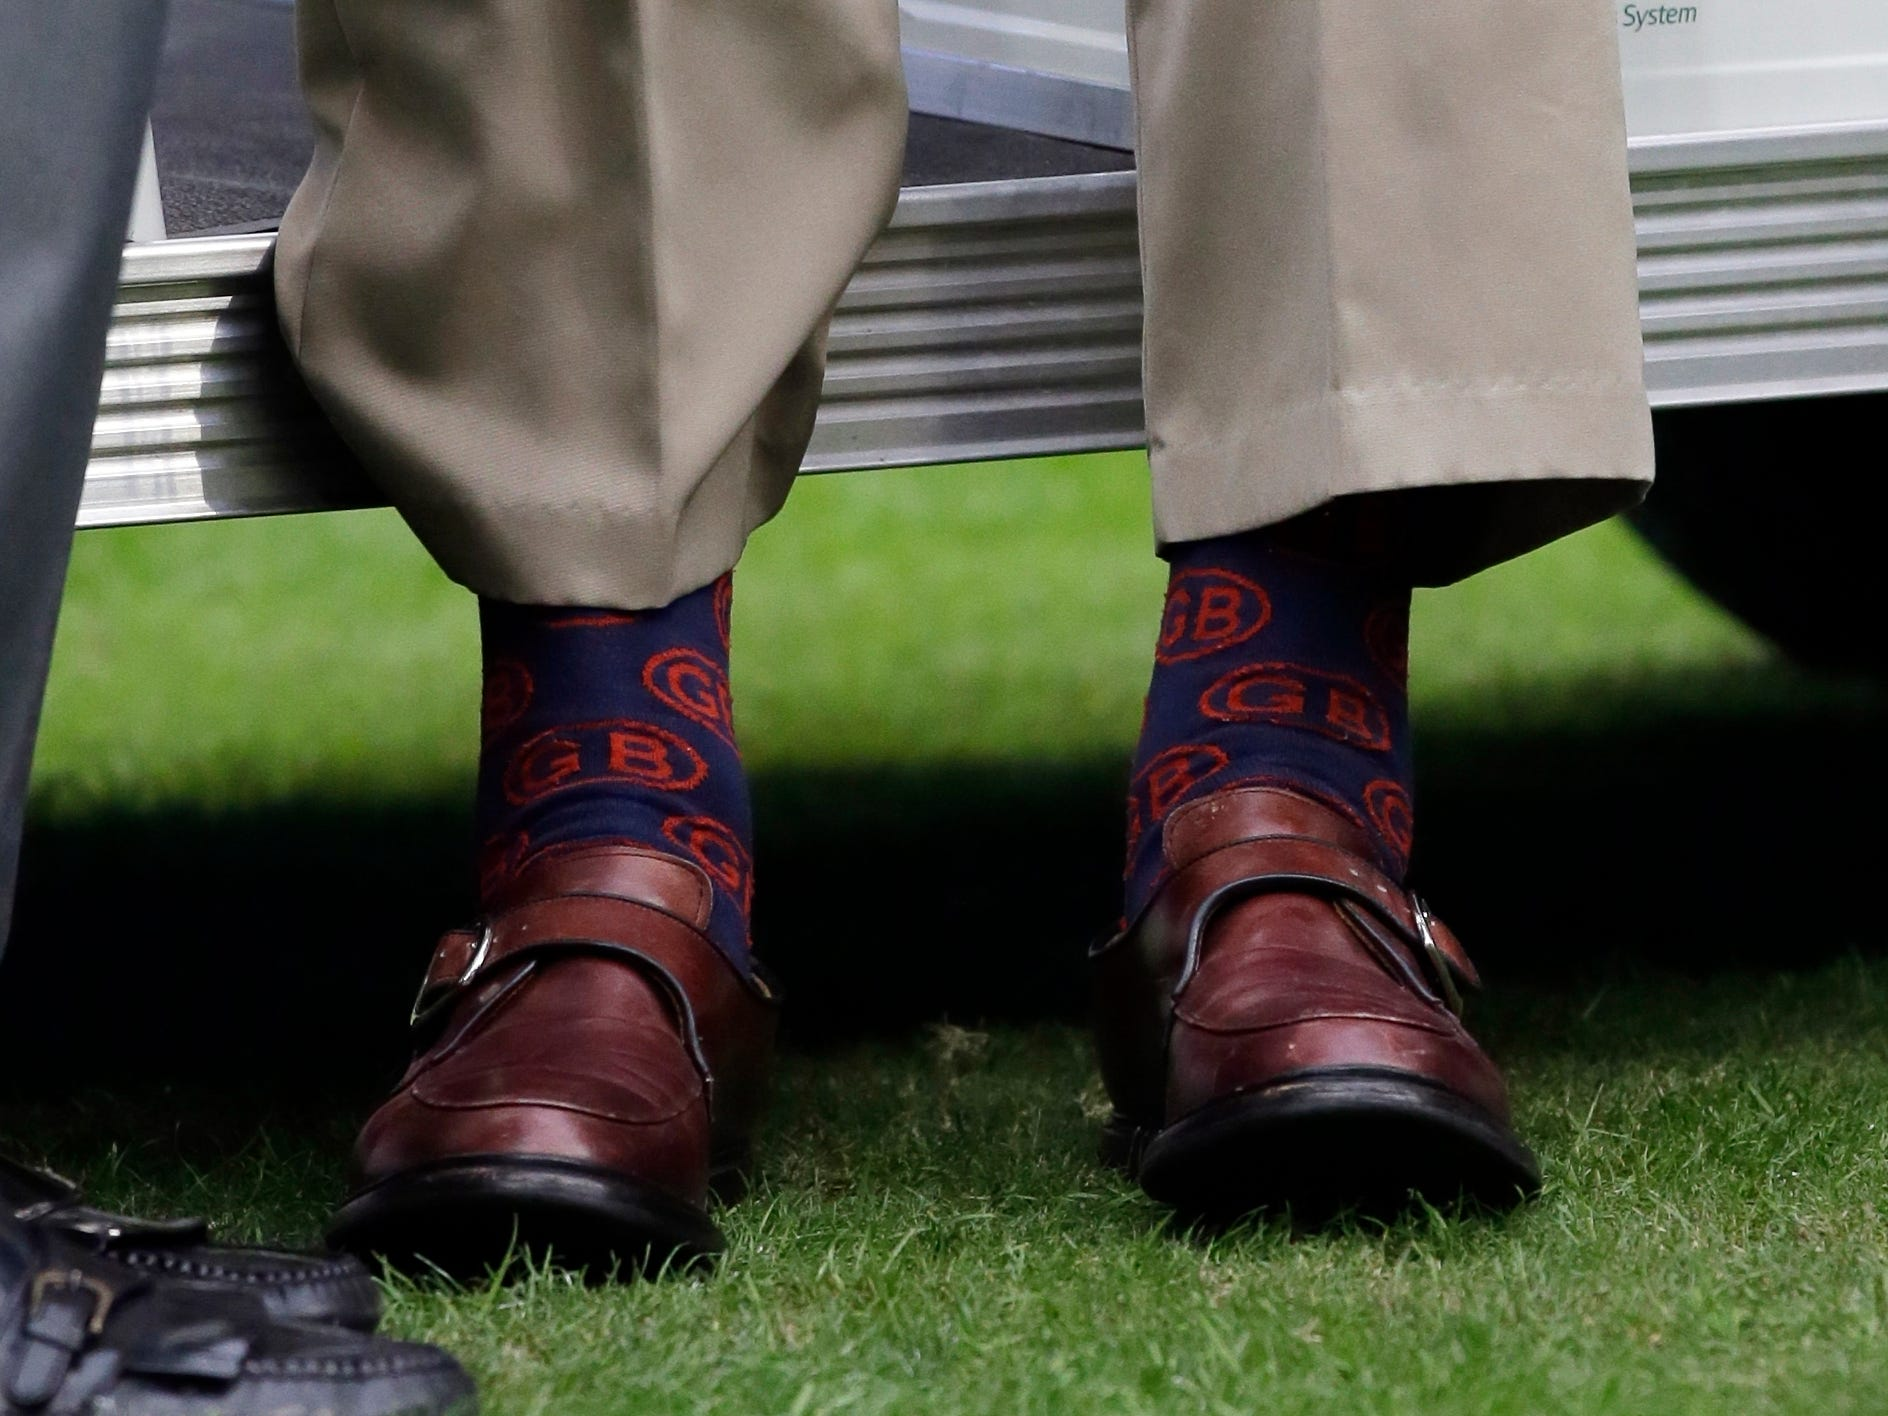 Former President George H.W. Bush wears socks with his initials at an NFL football game between the Houston Texans and the Oakland Raiders on Nov. 17, 2013, in Houston. (AP Photo/Tony Gutierrez, File) ORG XMIT: NYAJ108